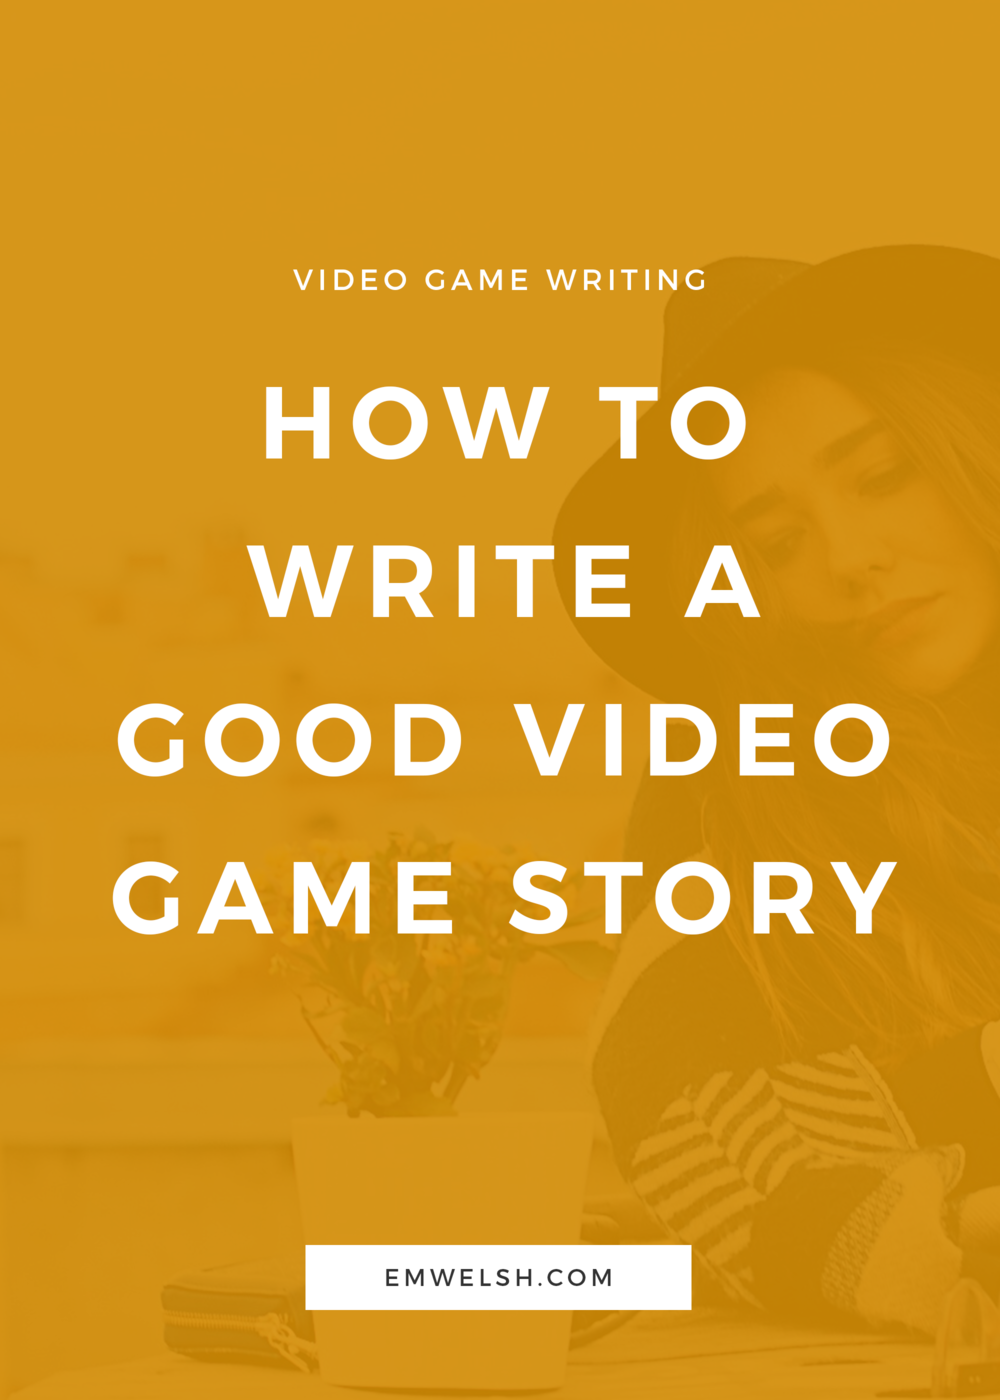 how-to-write-a-good-video-game-story.png